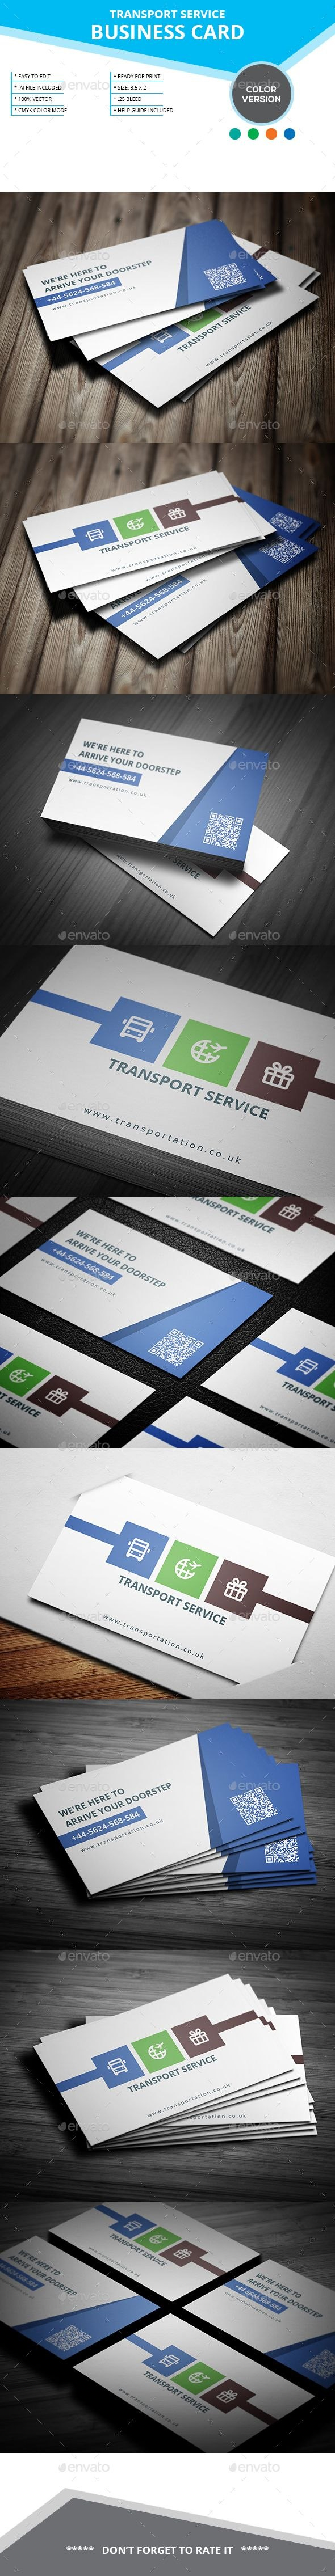 Transport Service Business Card Template Vector Eps  Business Card In Transport Business Cards Templates Free